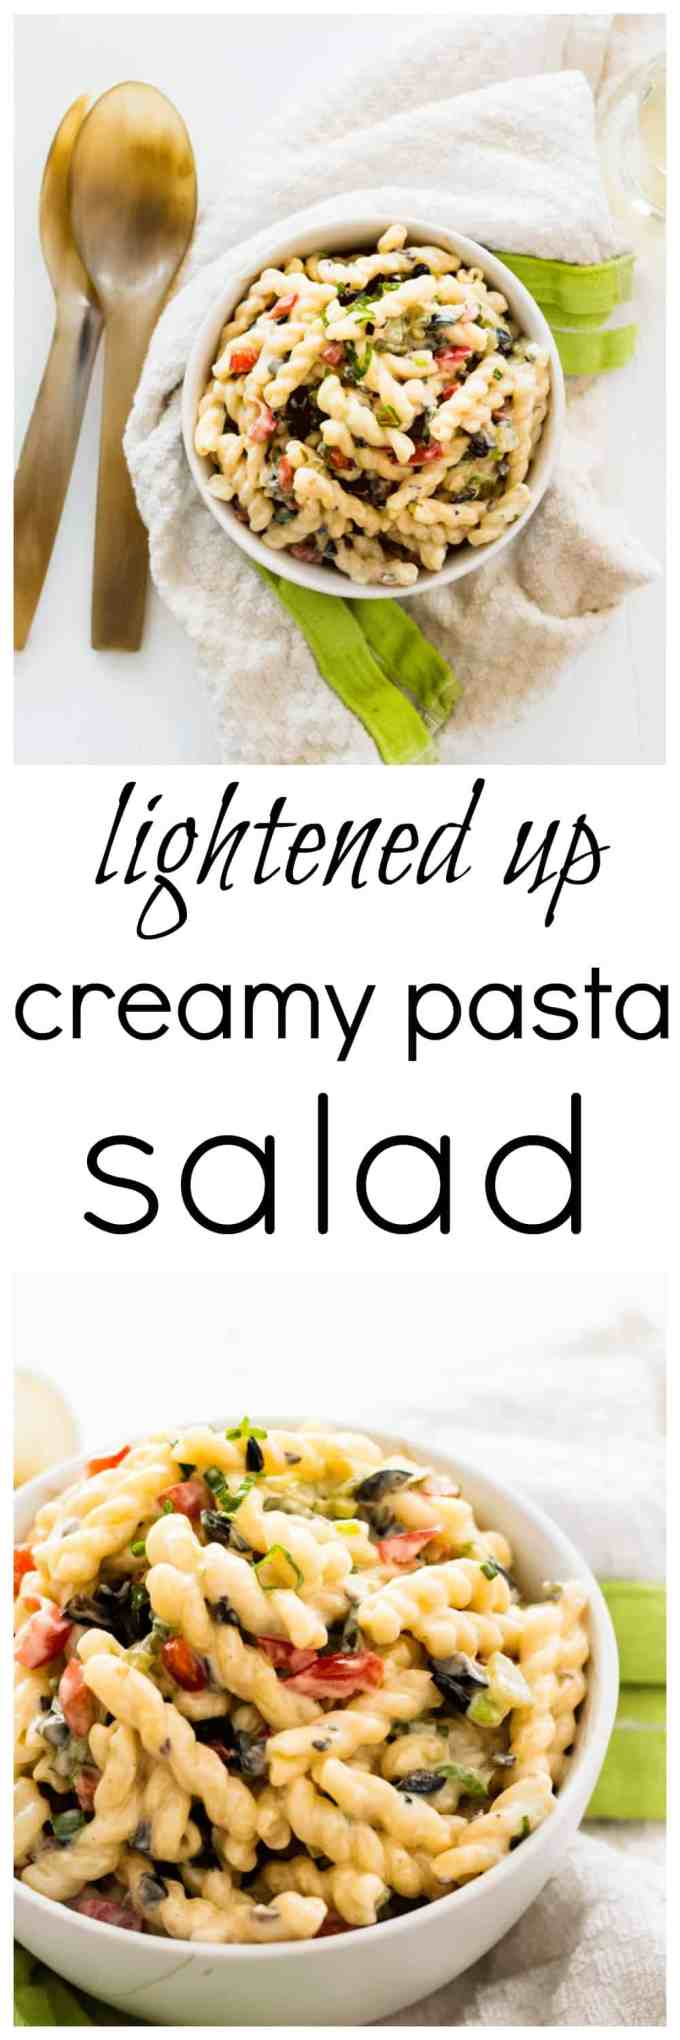 Lightened up creamy pasta salad. The perfect salad to bring along to a bbq or potluck this summer